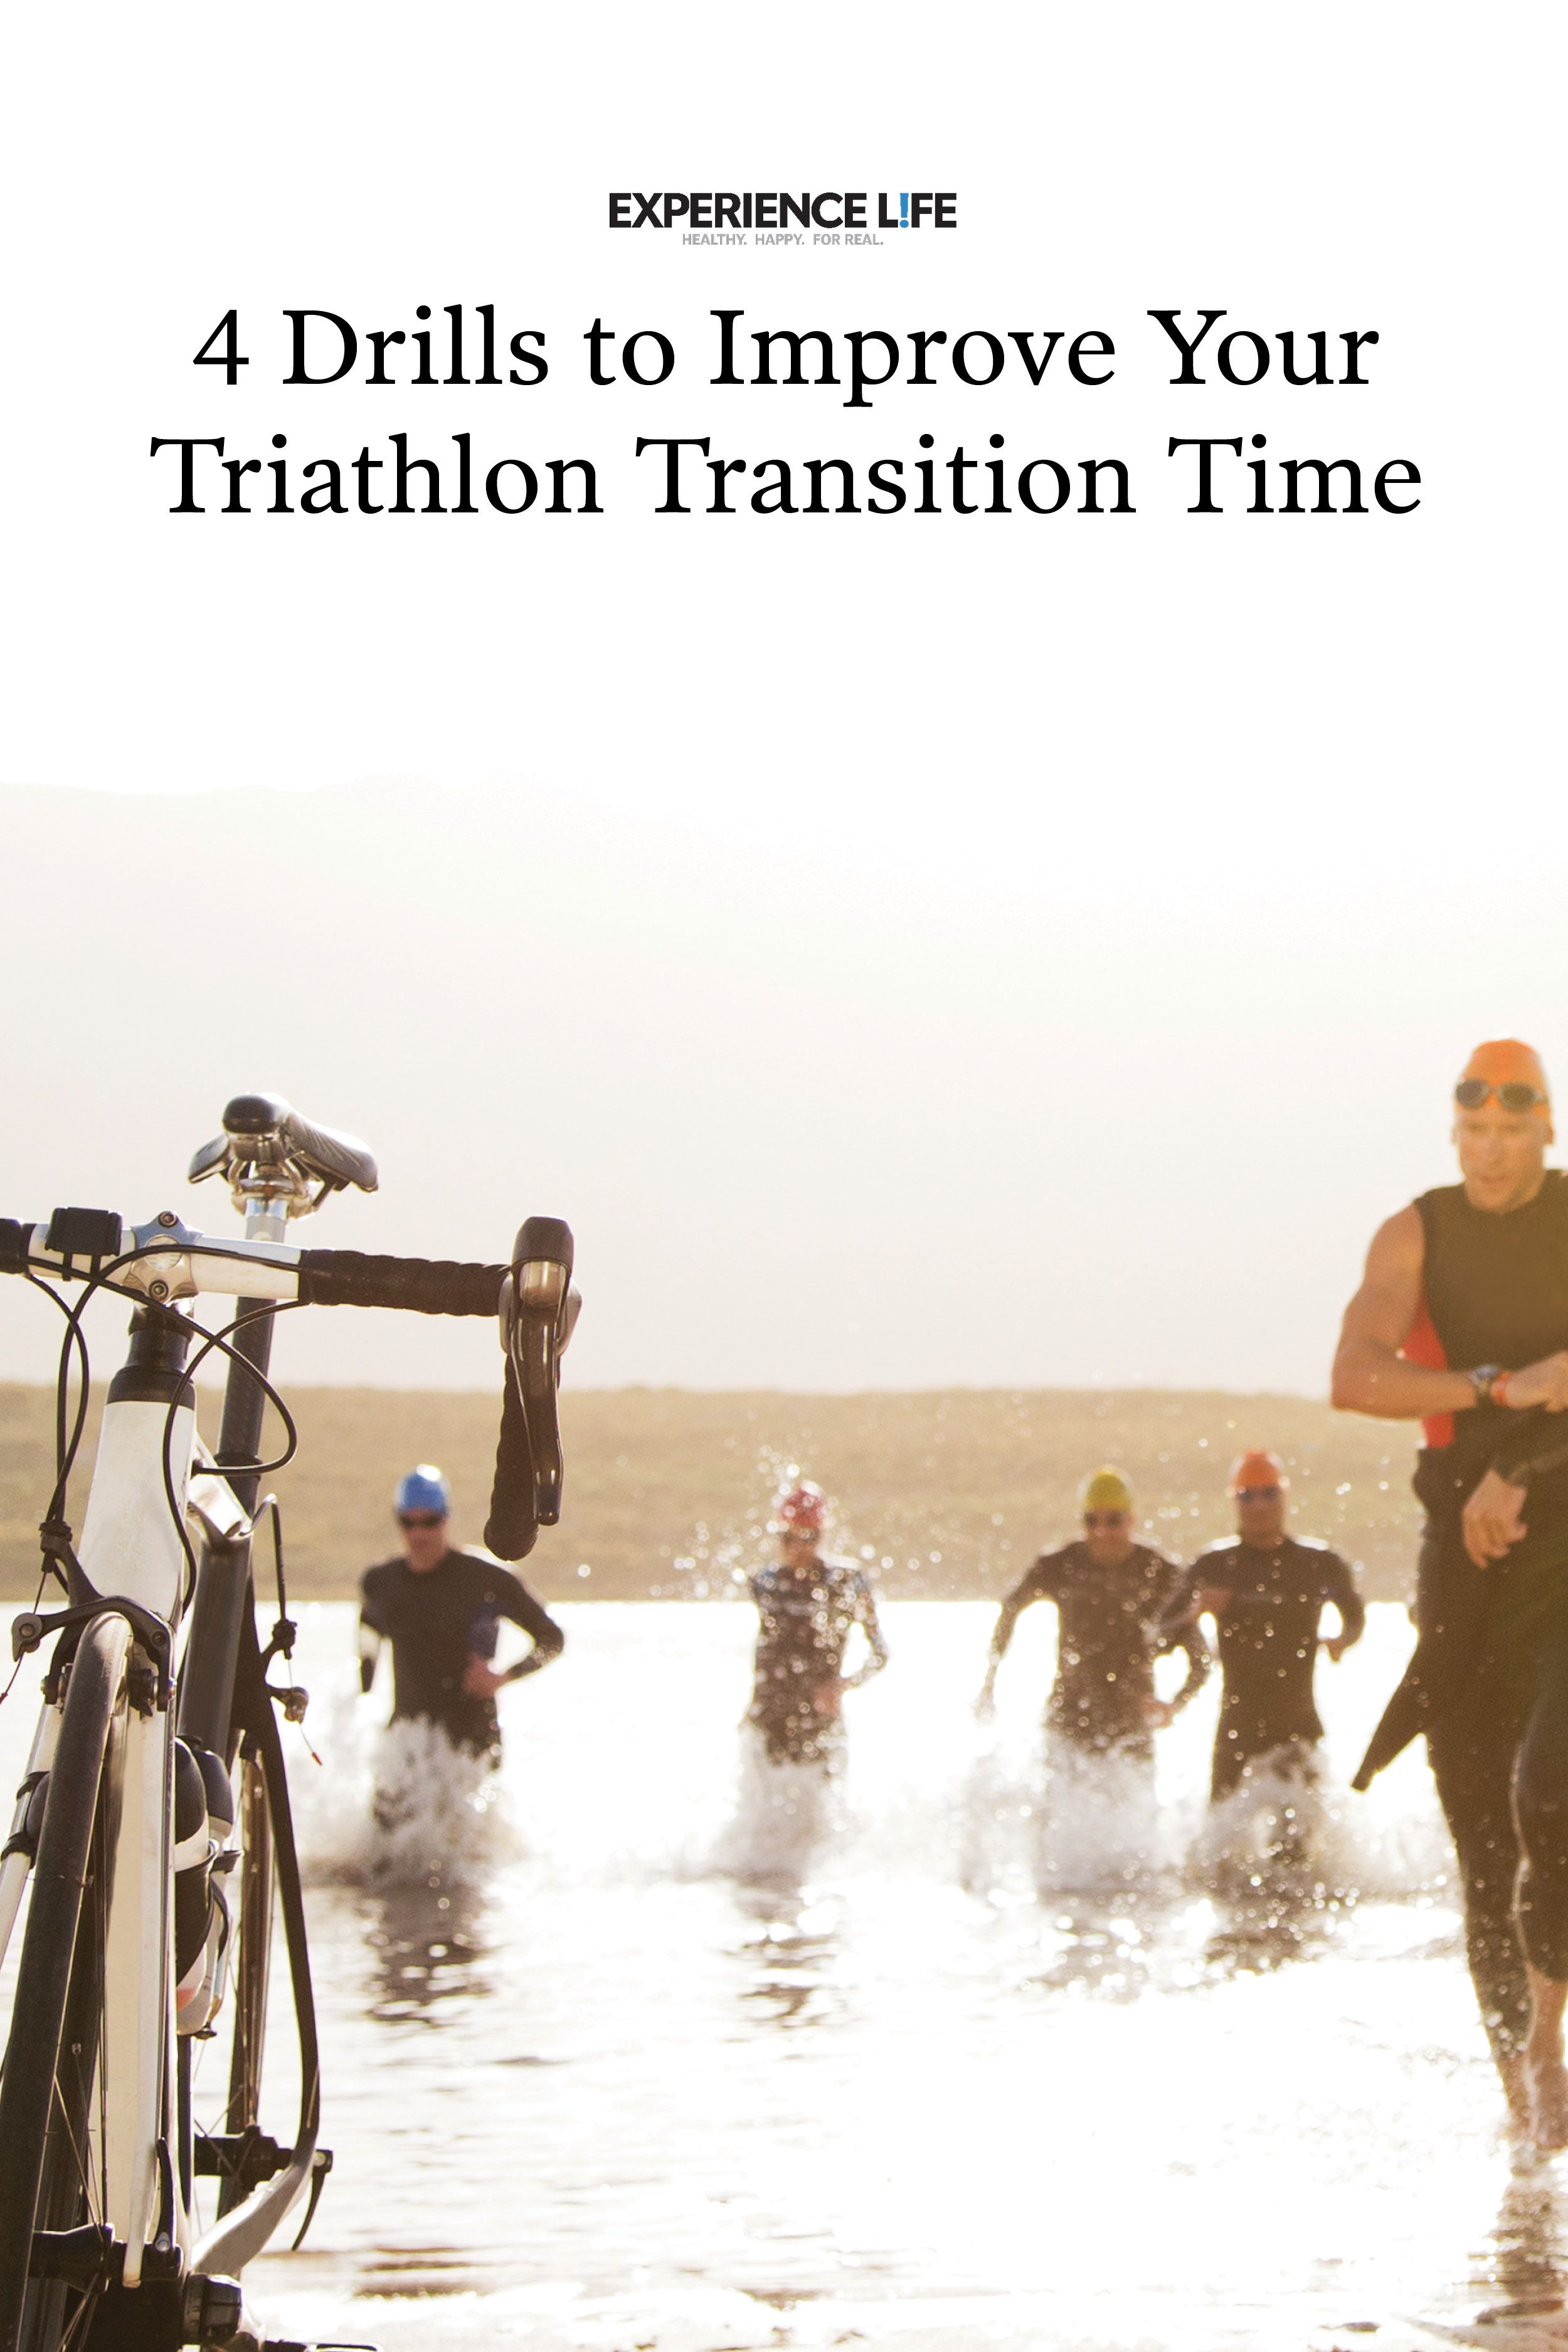 4 drills to improve your triathlon transition time